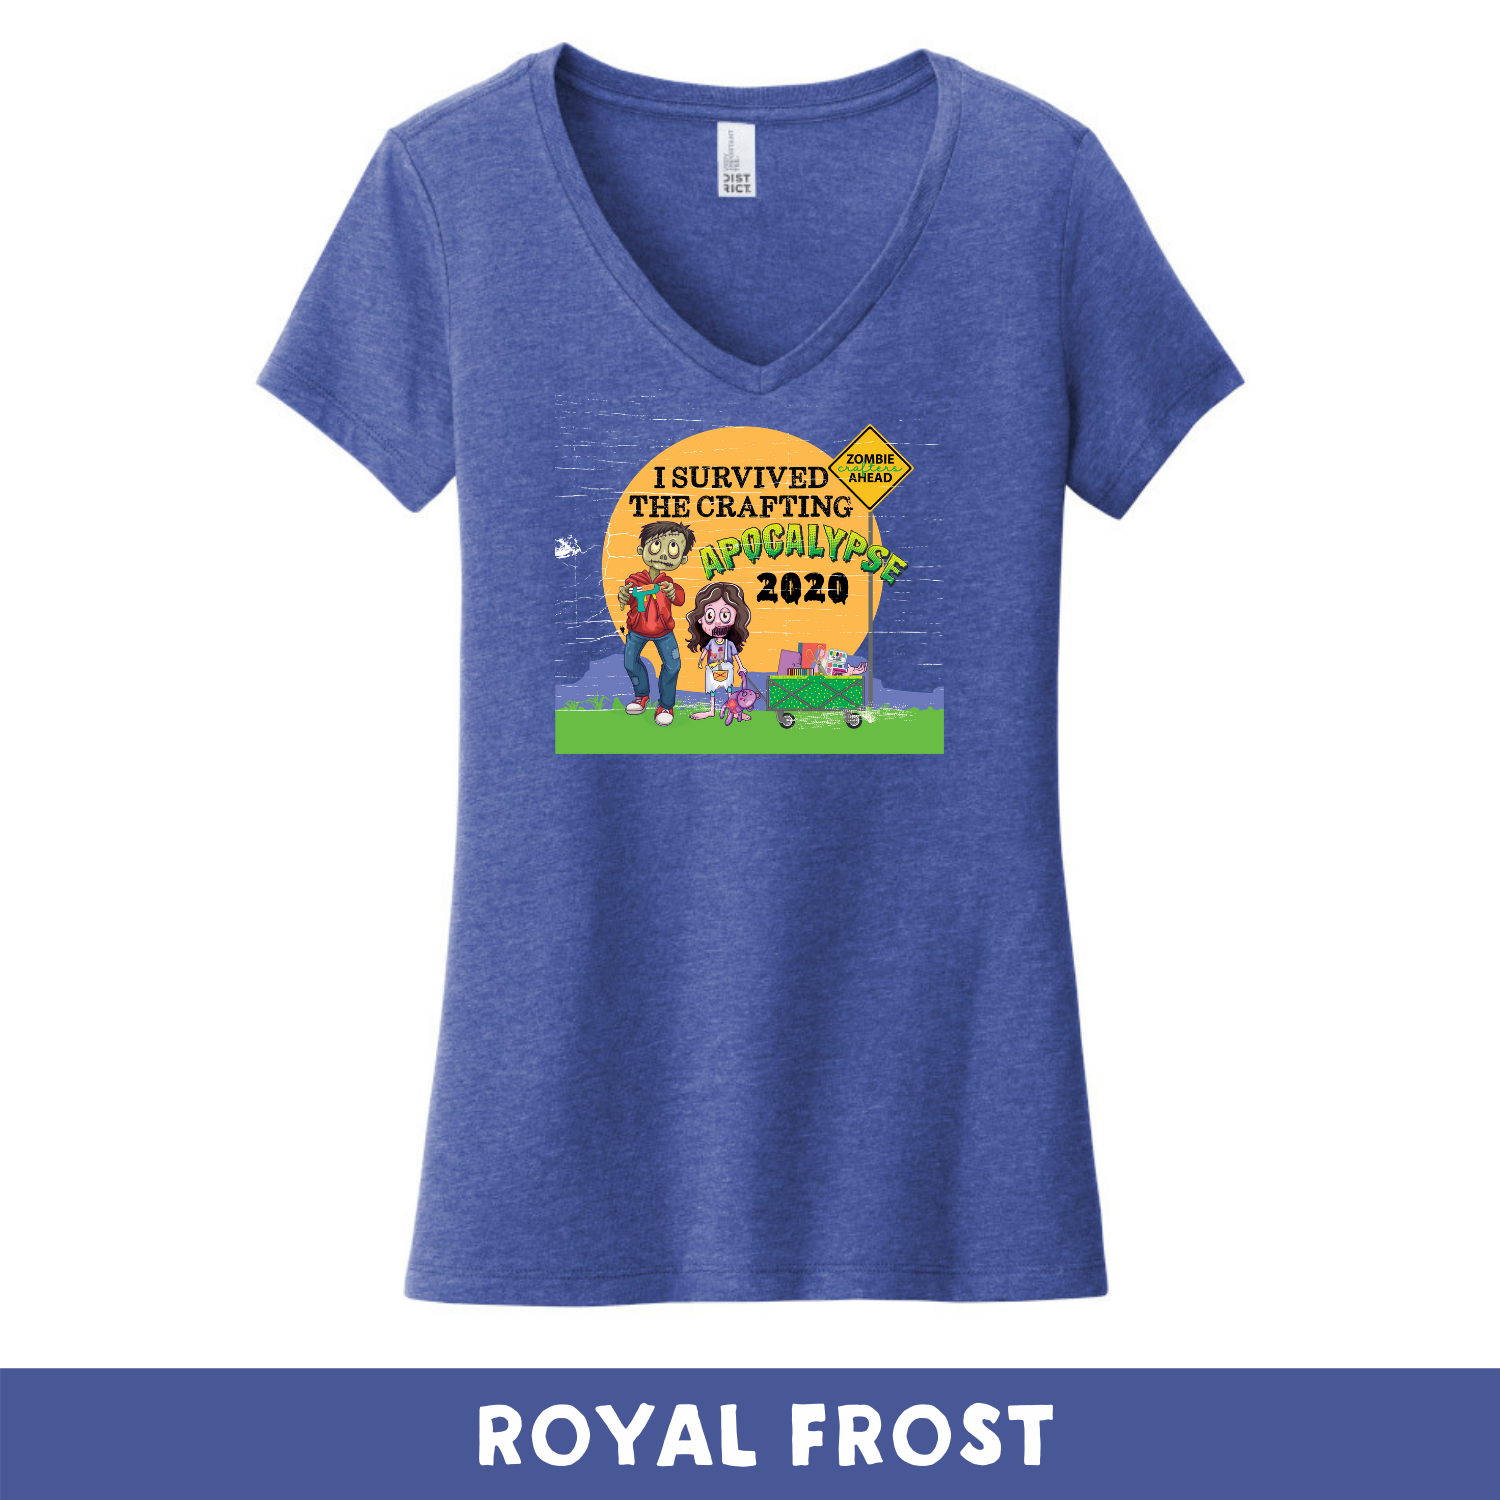 Royal Frost - Woman's Cut V-Neck - Heathered & Frosts- I Survived The 2020 Crafting Apocalypse